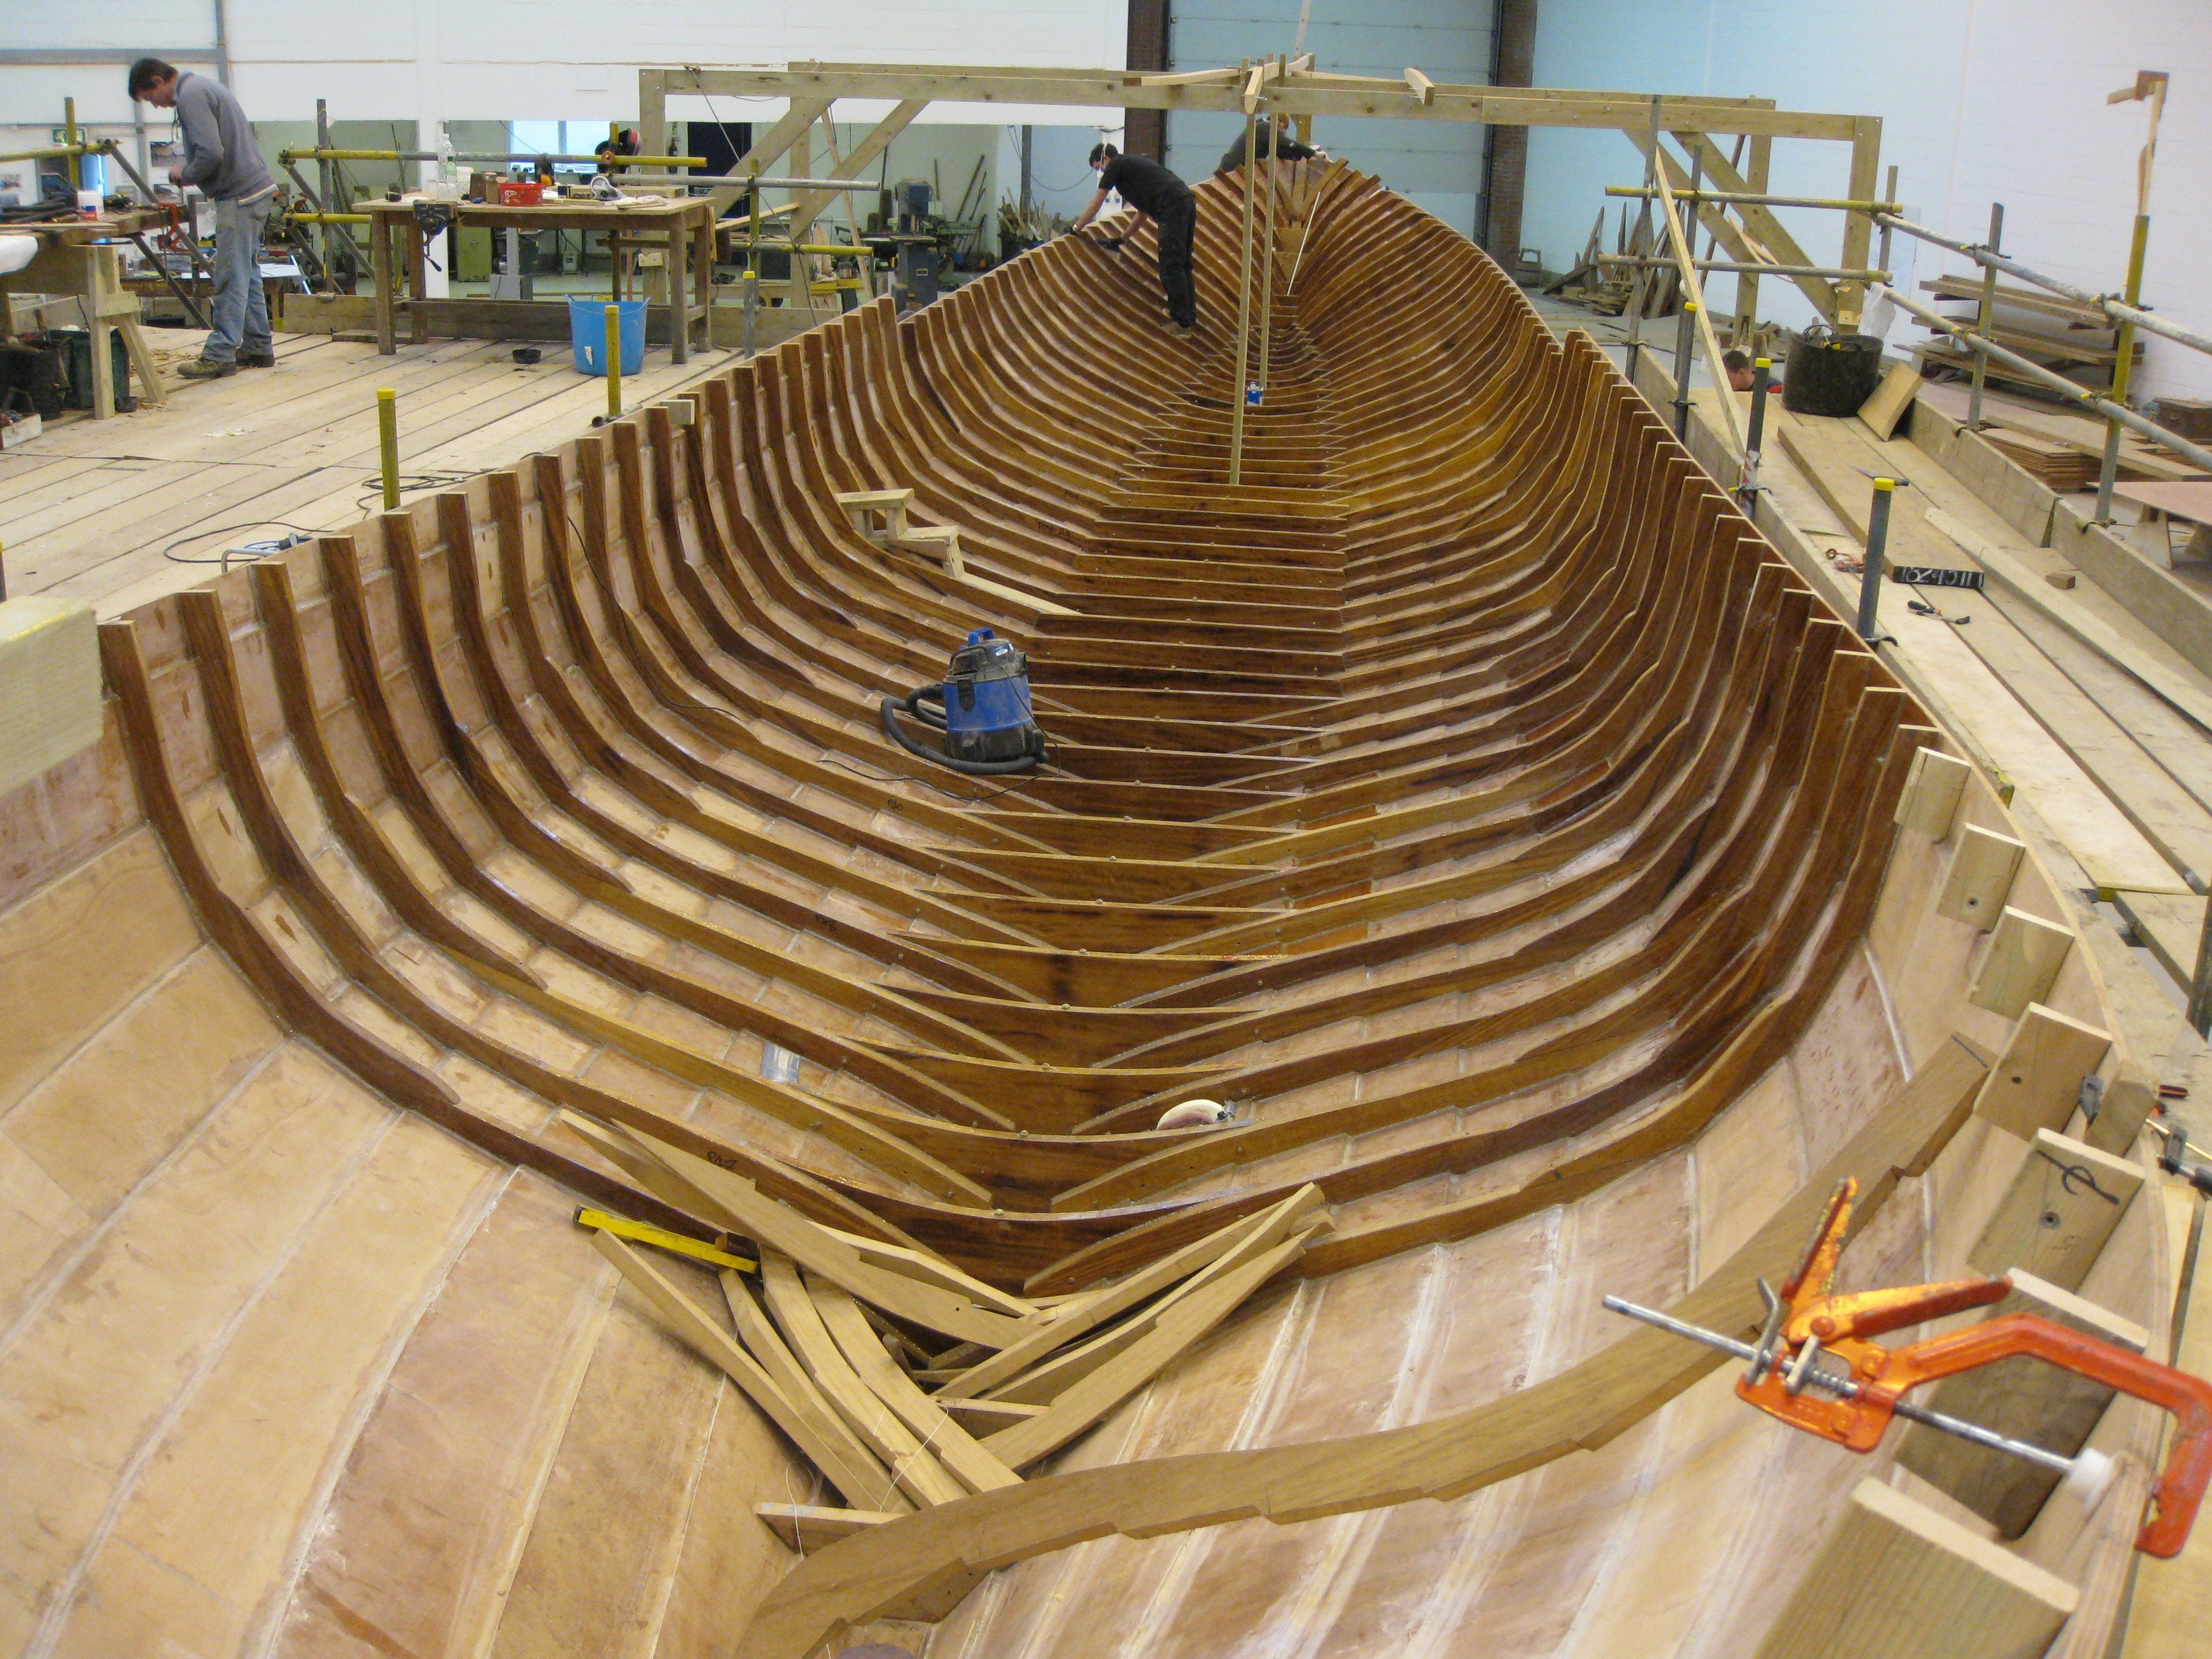 The wooden hull is fitted with ribs